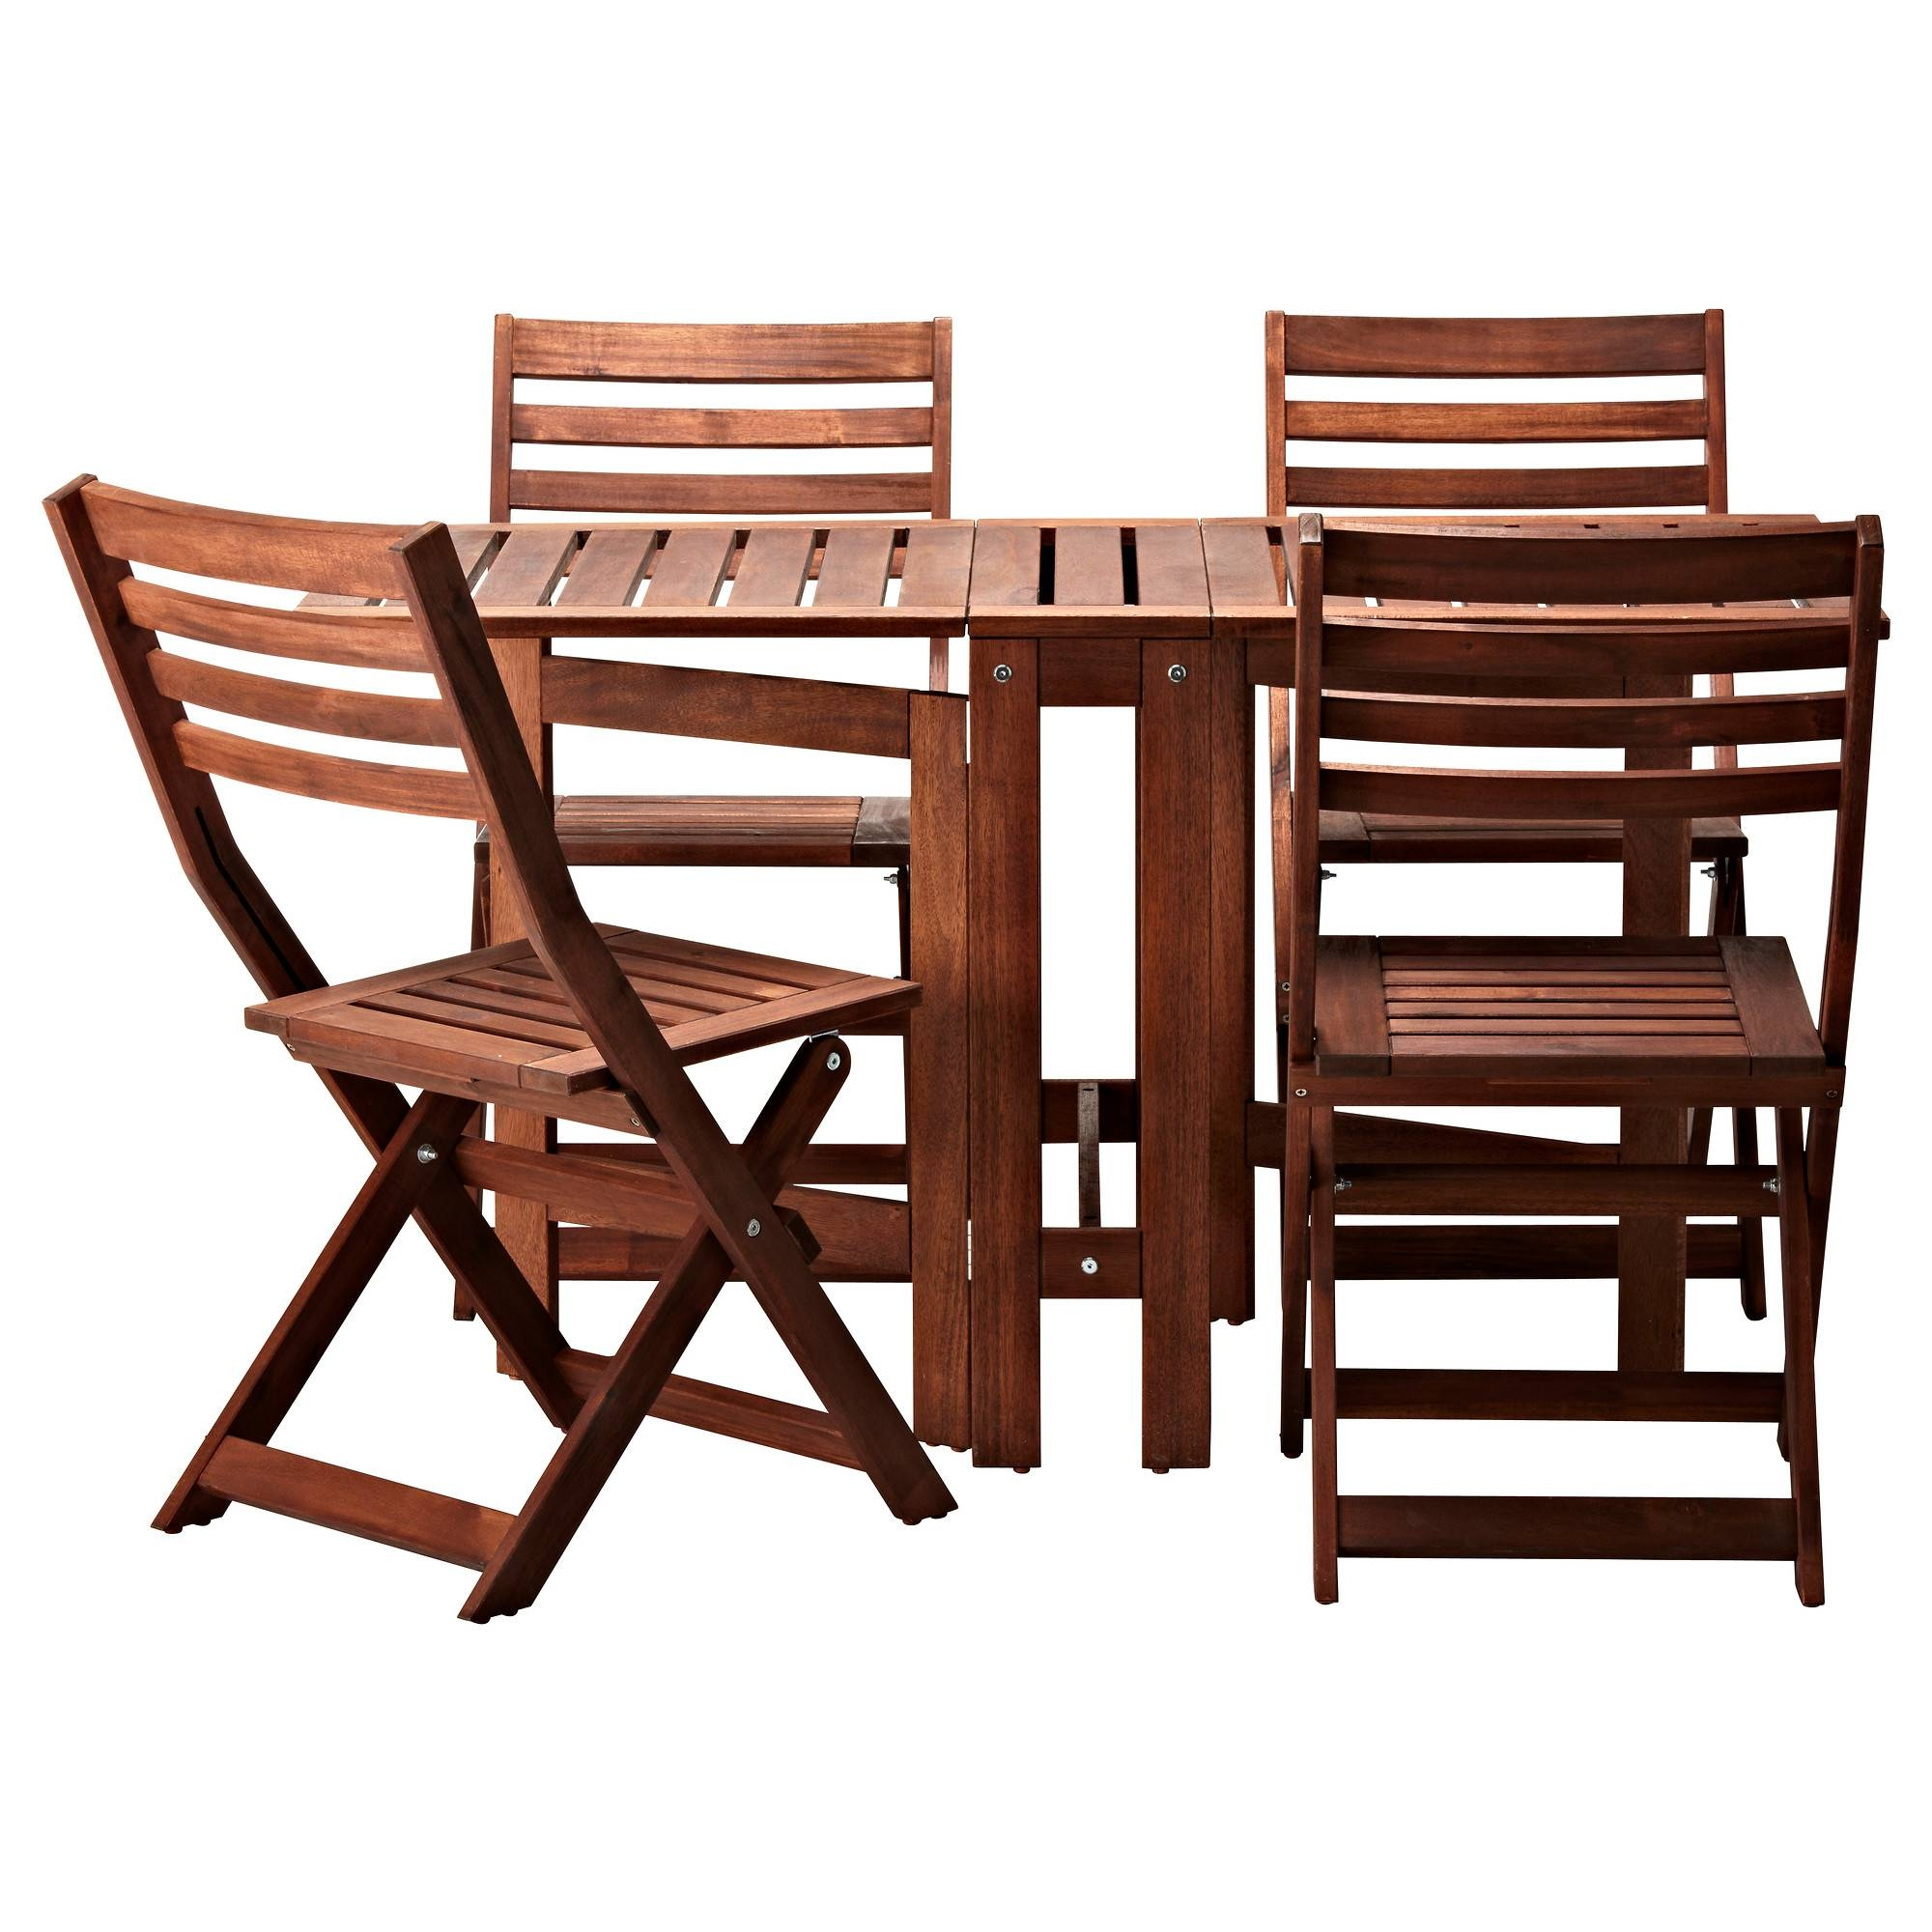 Garden Furniture - Outdoor Furniture - Ikea inside Outdoor Sofas And Chairs (Image 8 of 15)